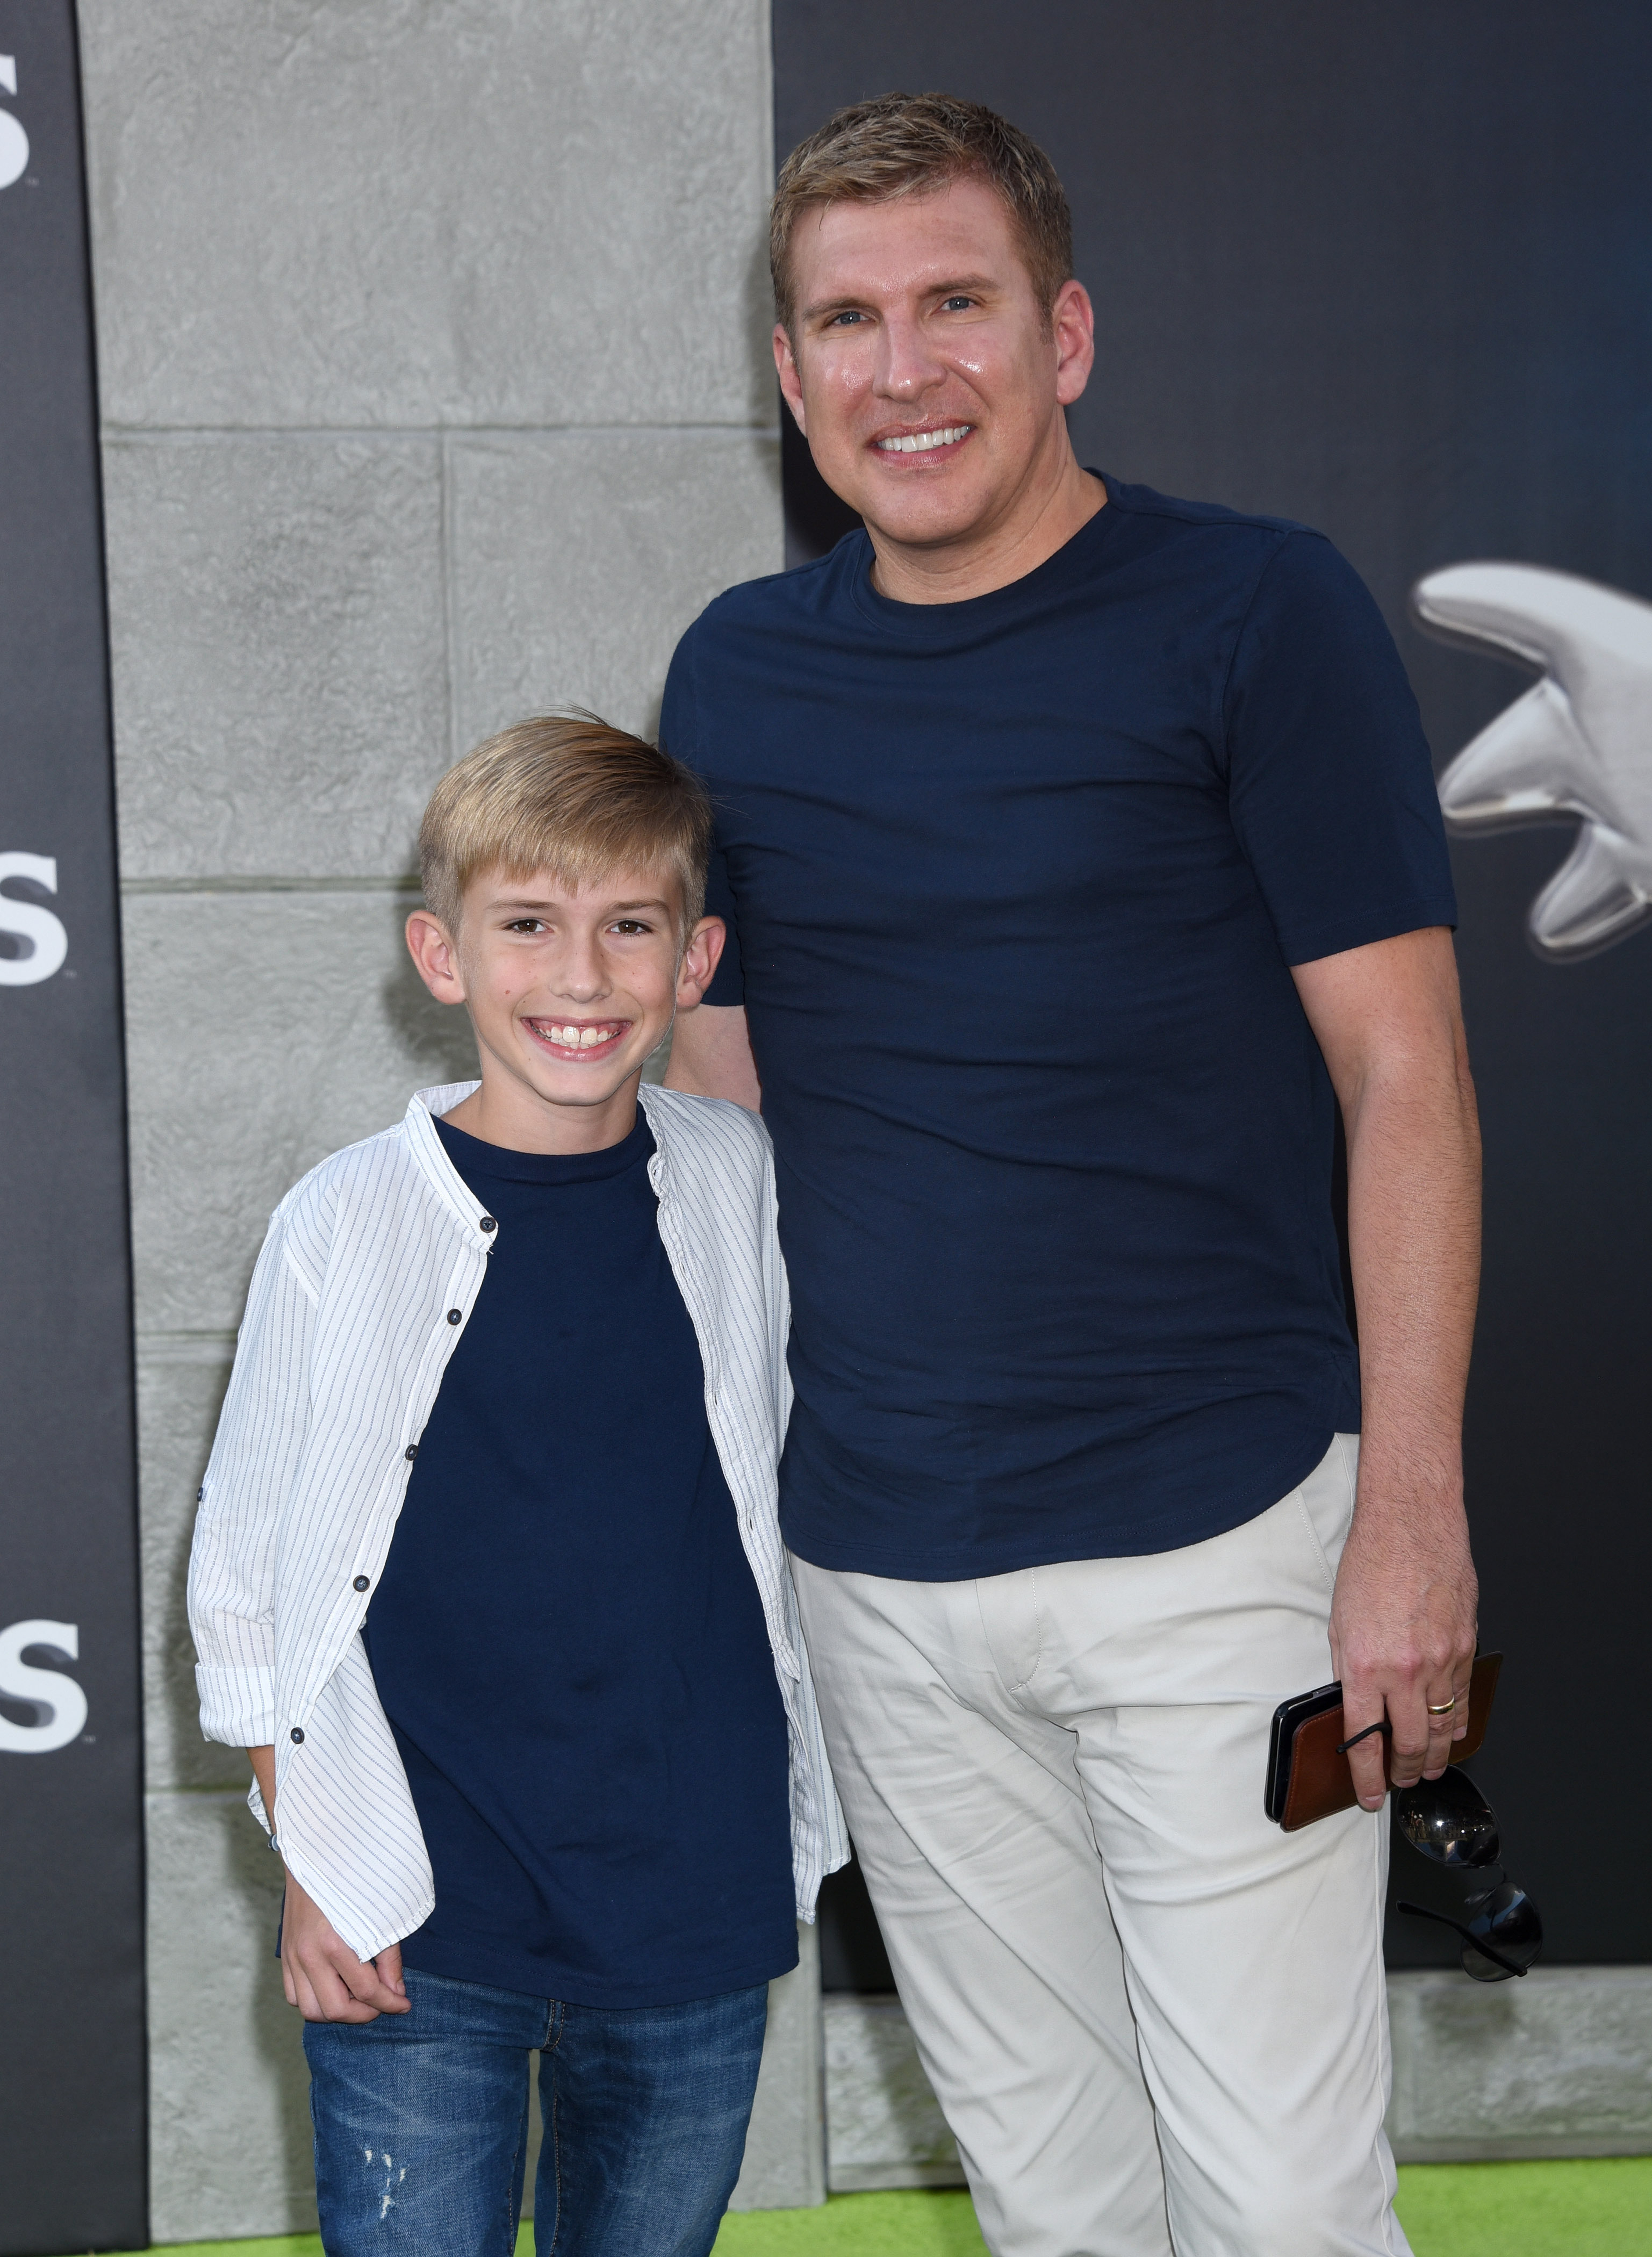 """Todd Chrisley and son Grayson attend the premiere of """"Ghostbuster"""" in Hollywood, California on July 9, 2016 